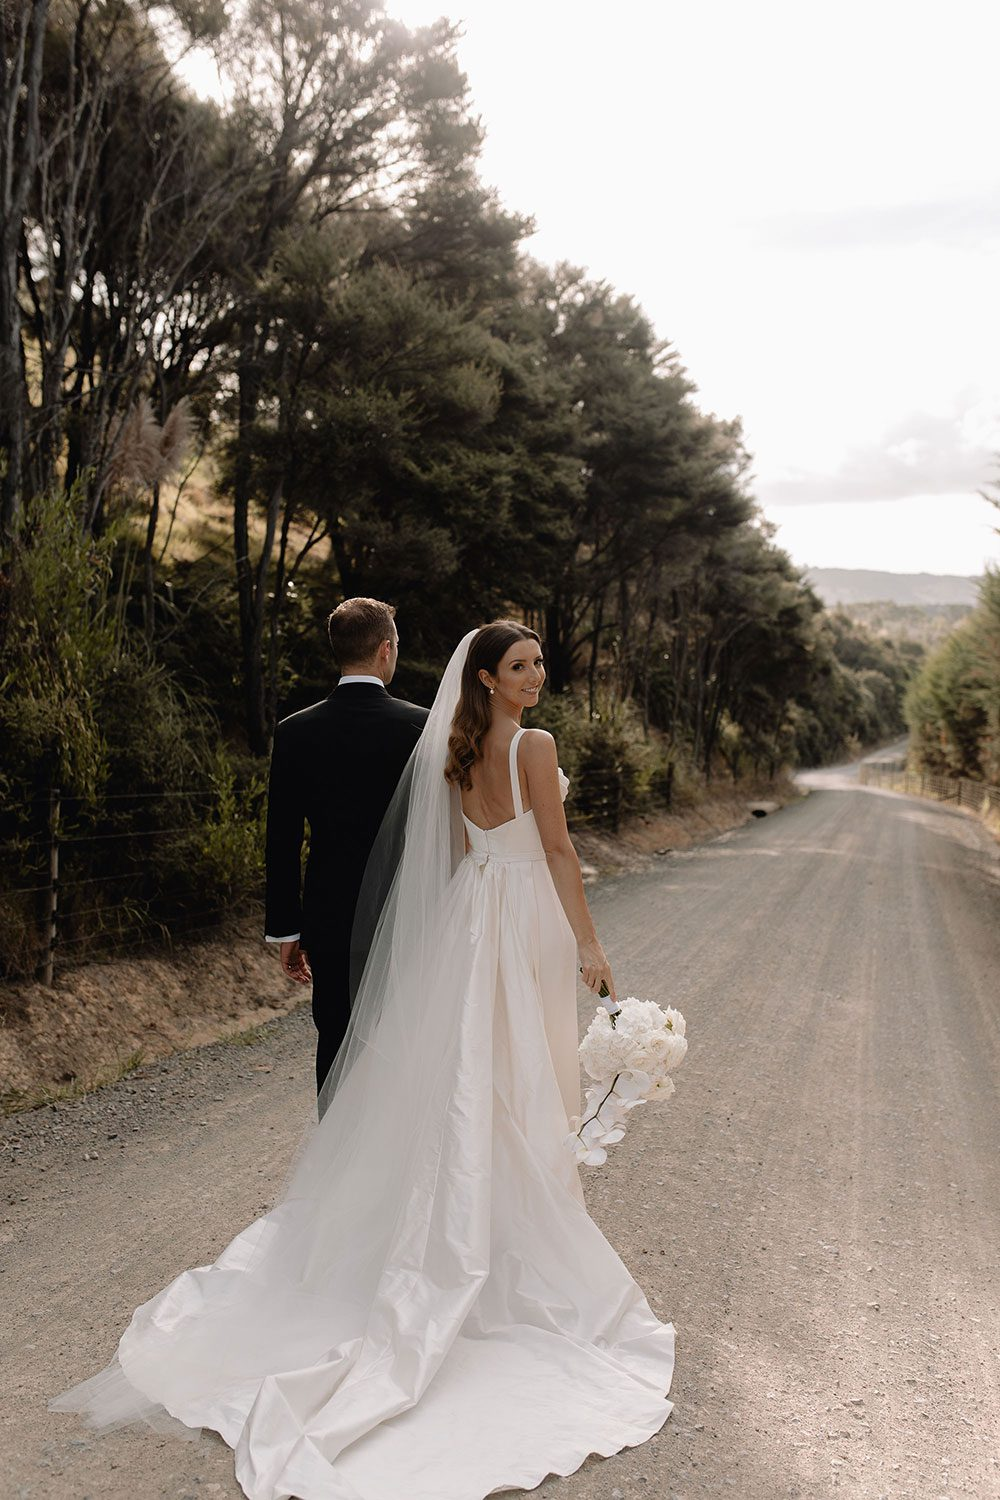 Bride wearing NZ Bespoke Bridal Gown made of silk faile with cowl bodice and detachable overskirt by Vinka Designs - looking back with groom on road